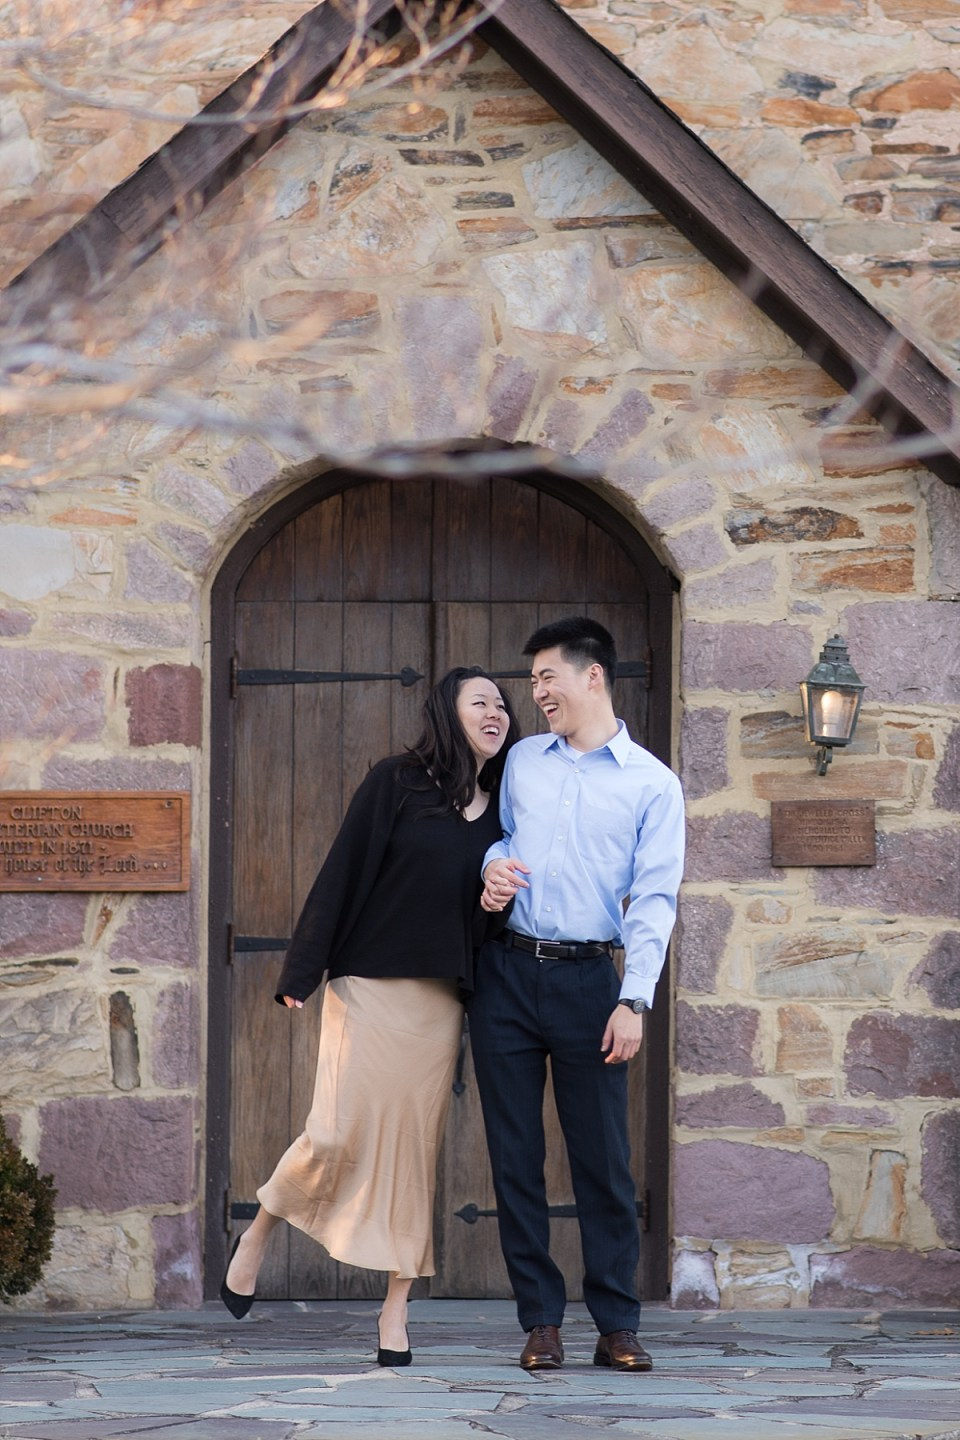 Clifton_Virginia_Engagement_Session_Erin_Tetterton_Photography_0019.jpg